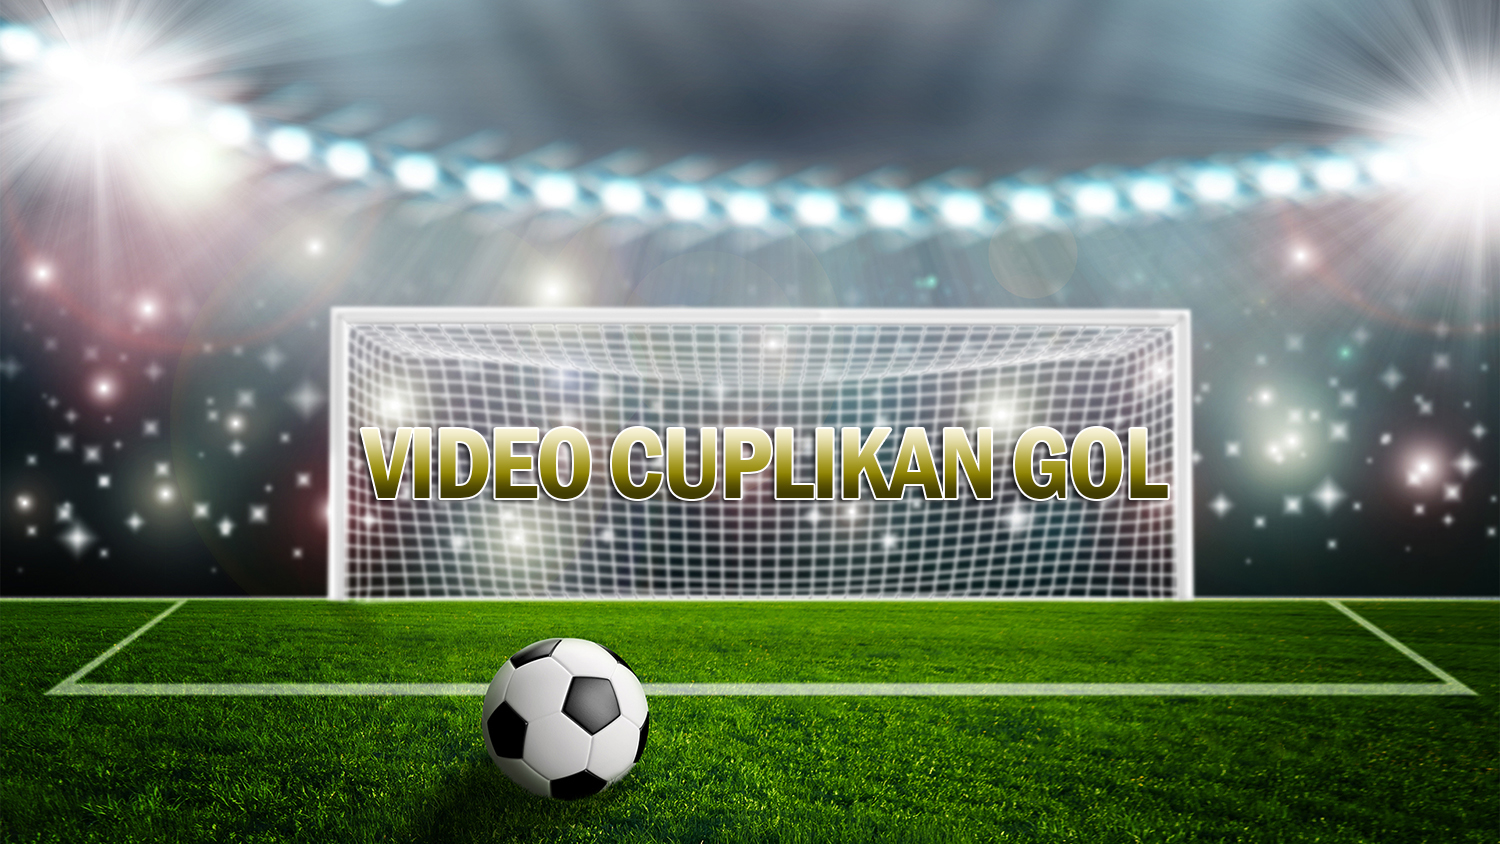 Cuplikan Gol Vasco da Gama VS Atletico PR 15 November 2018